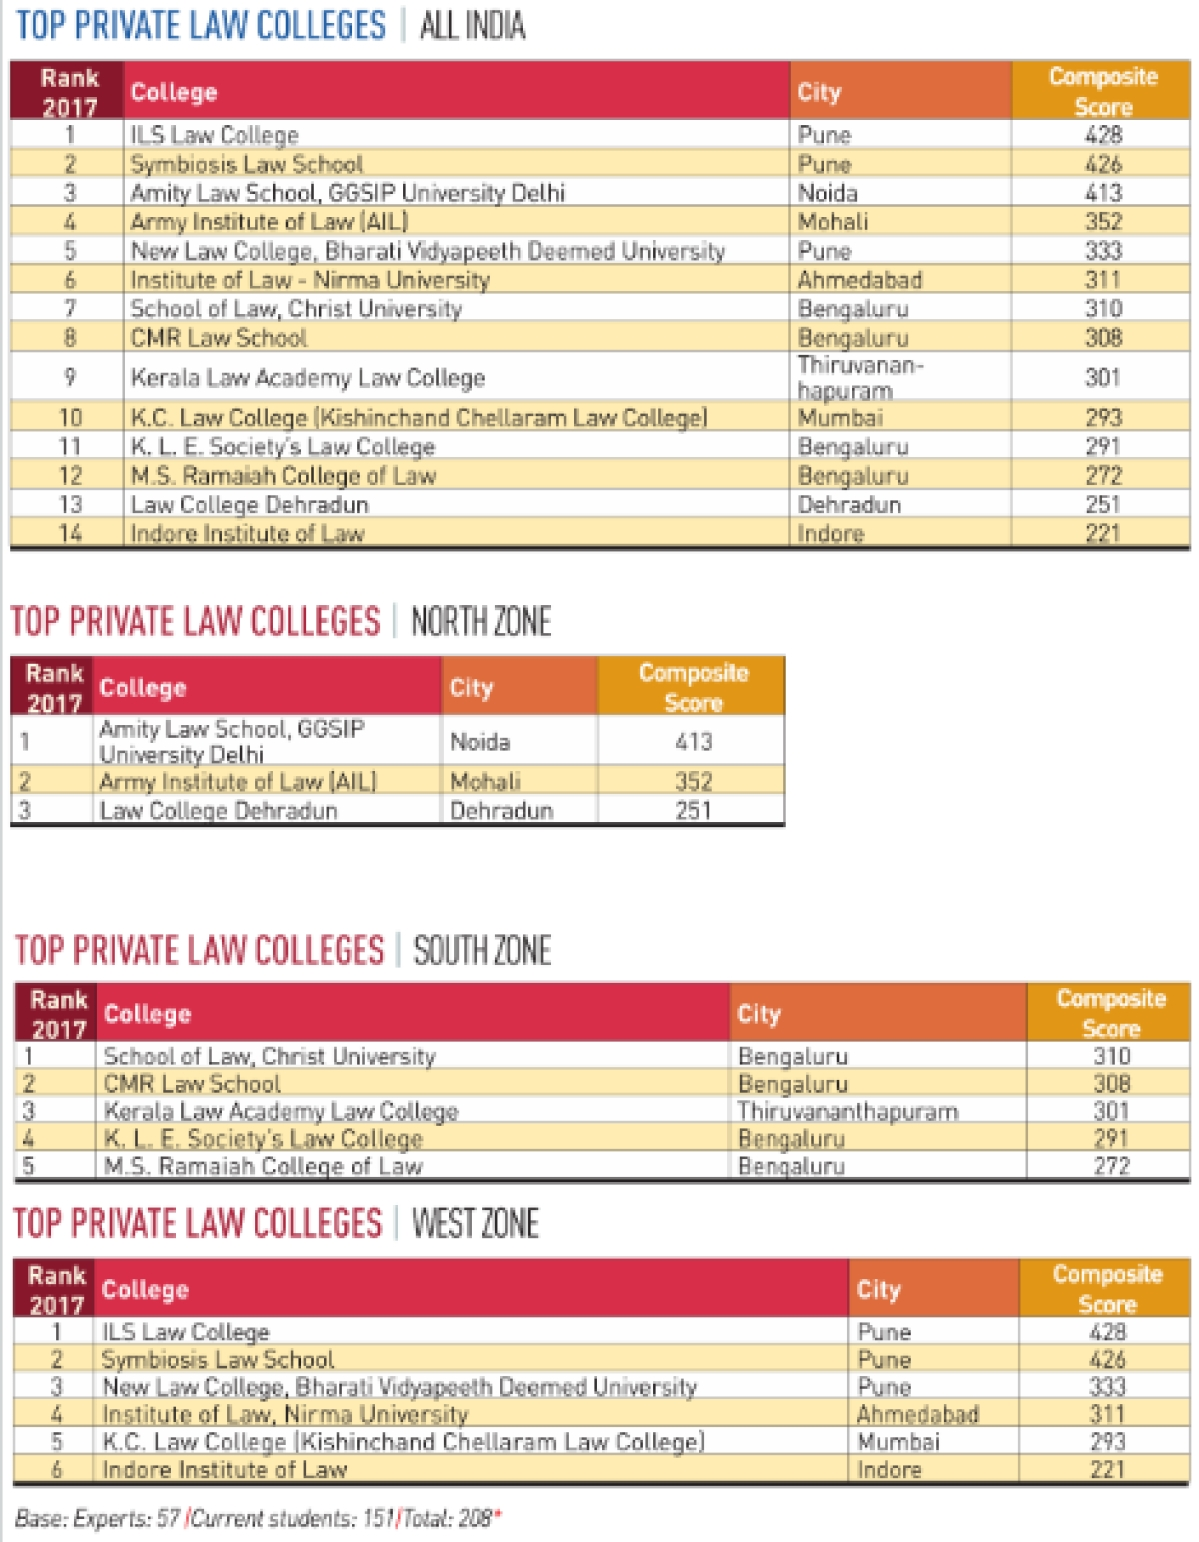 A step closer to the truth? The Week's top law colleges in India